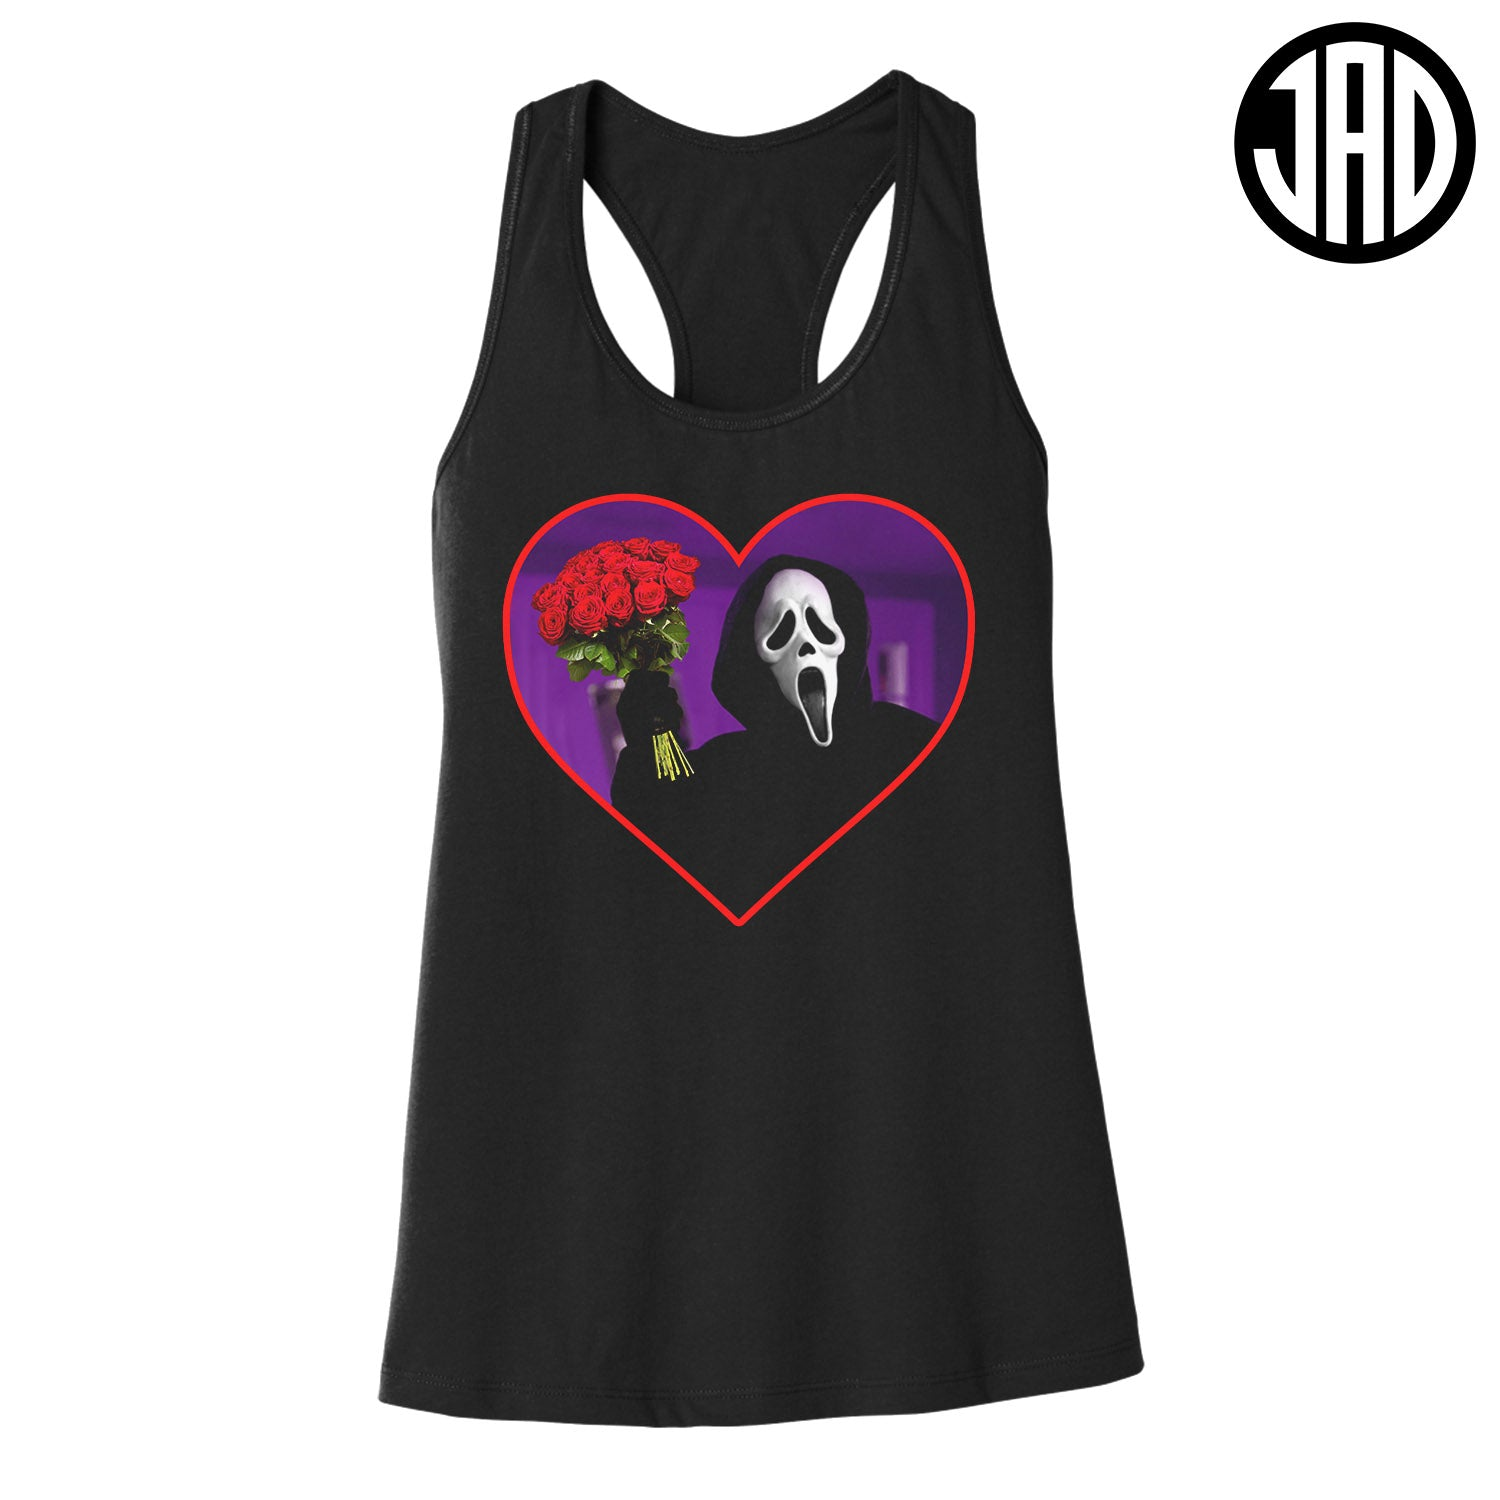 Don't Hang Up On Me - Women's Racerback Tank